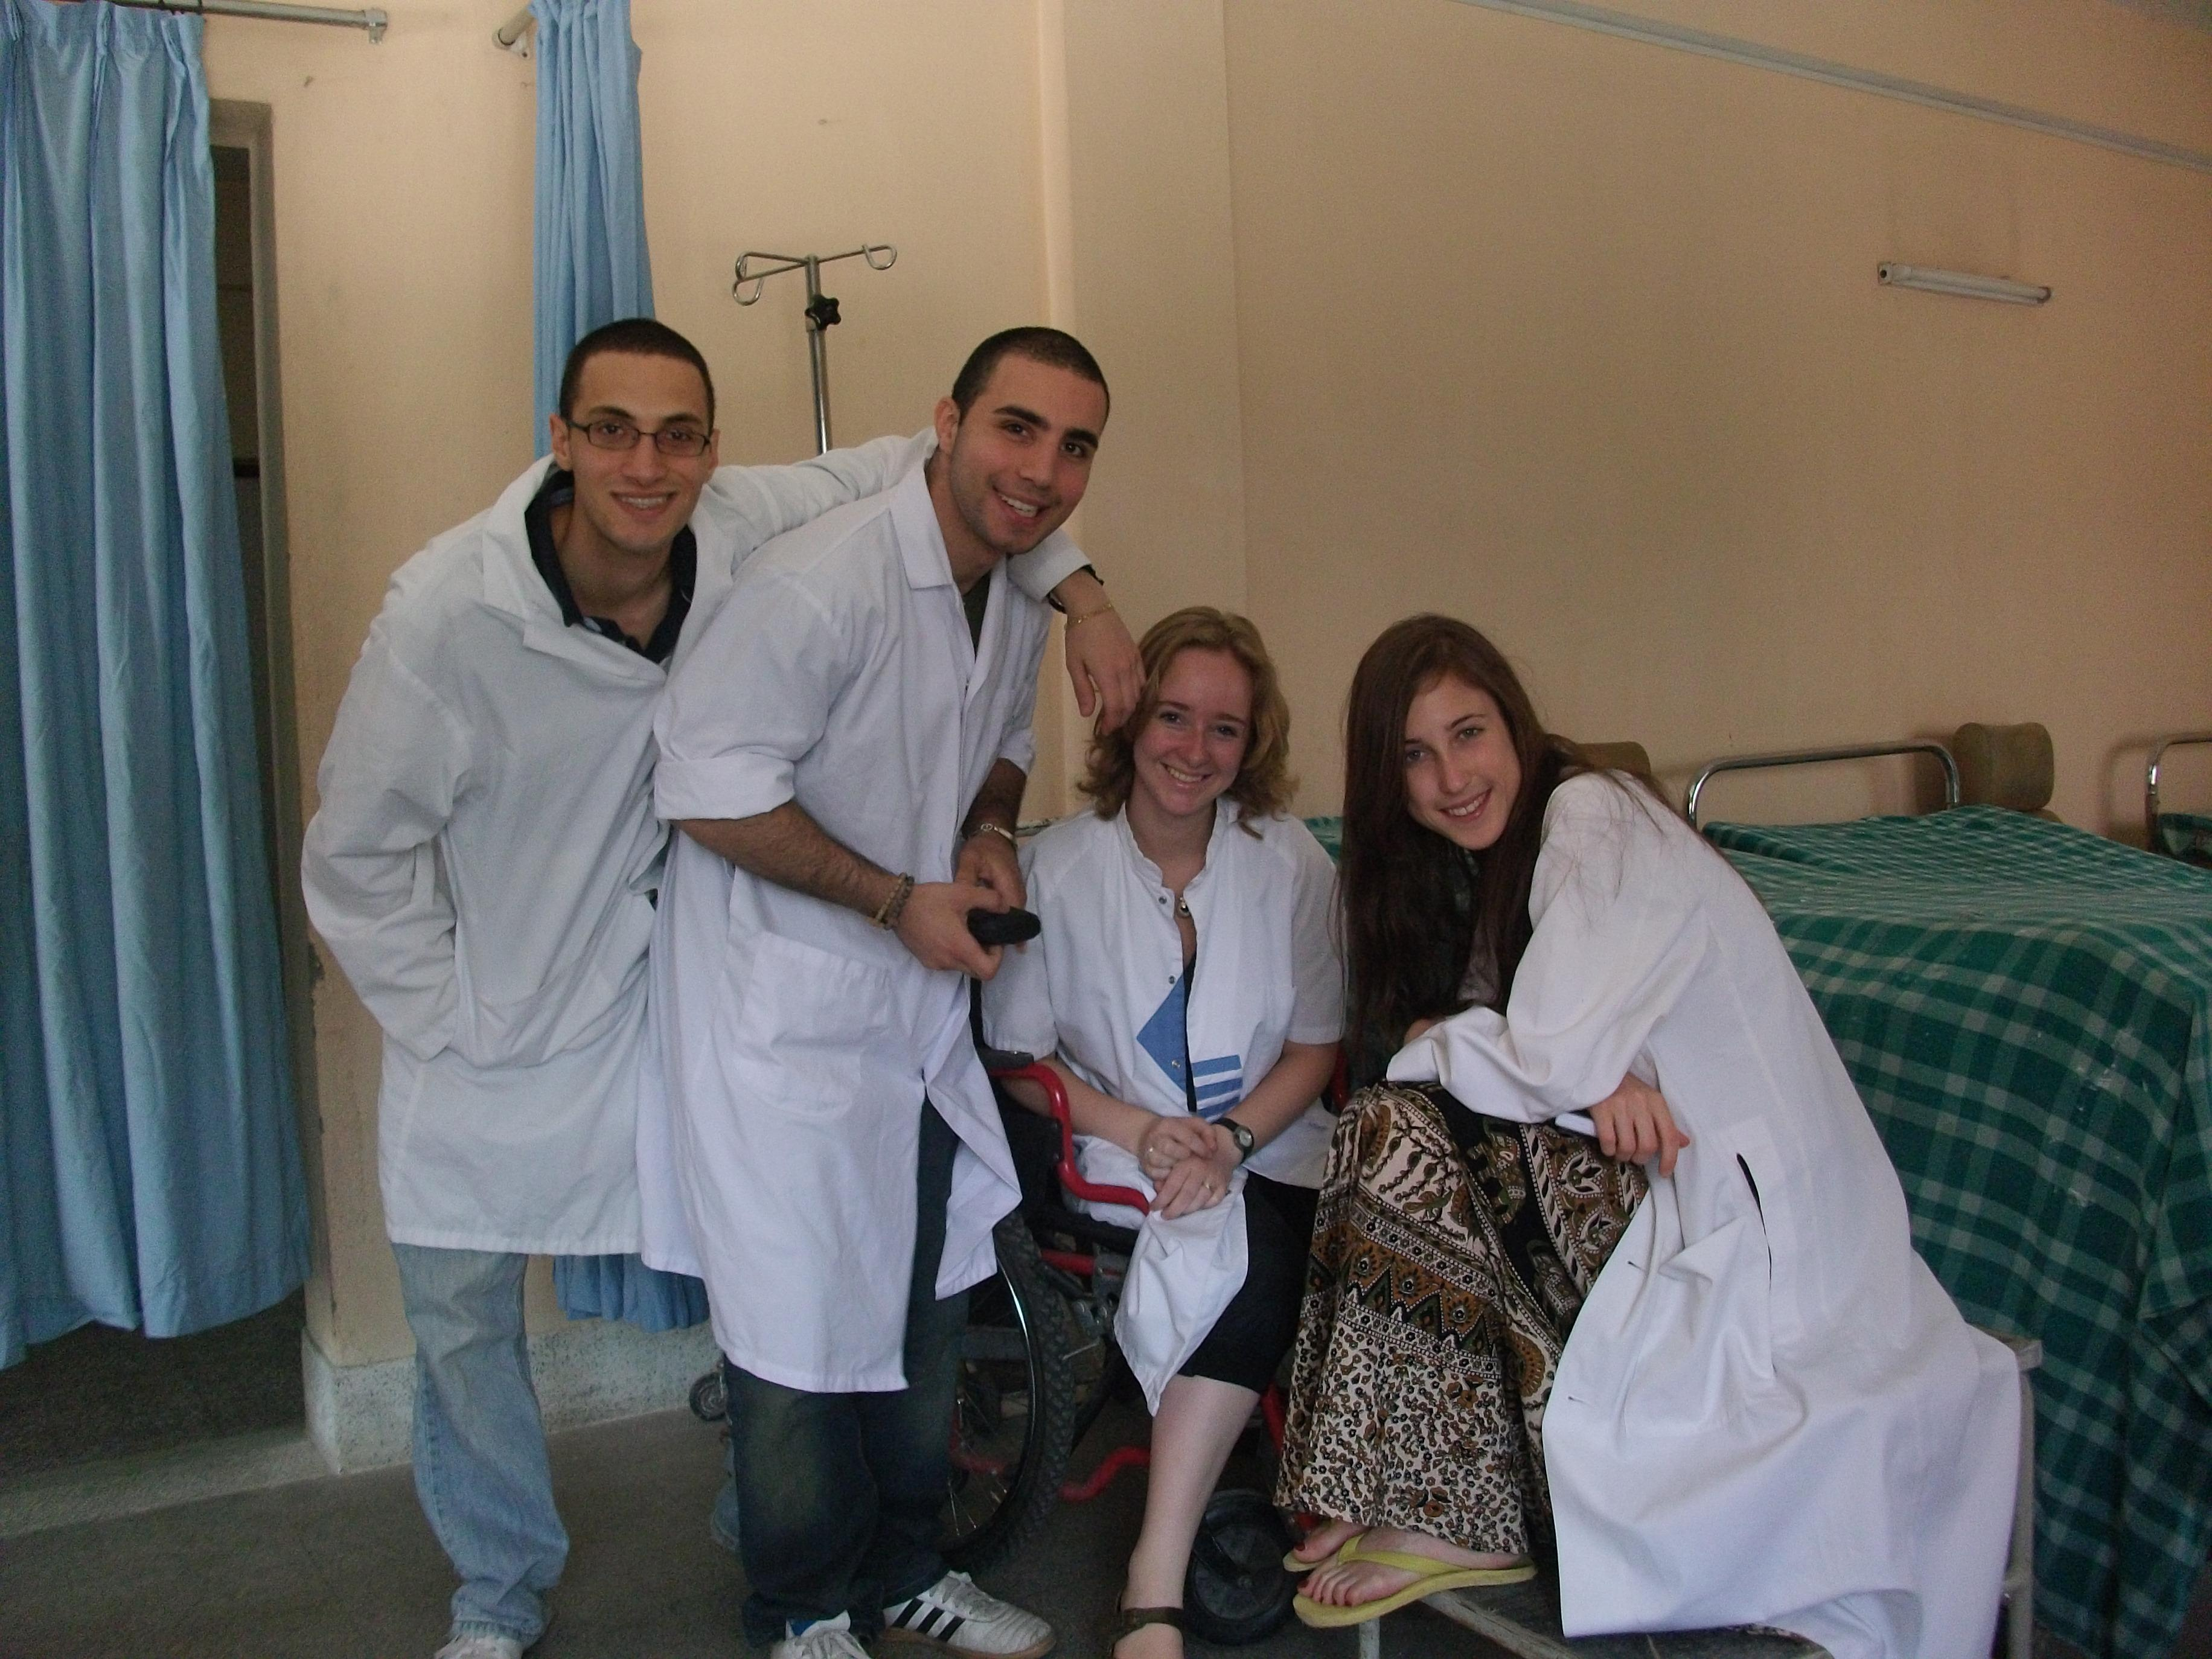 A female intern from Projects Abroad poses with local staff members during her nursing internship in Nepal.